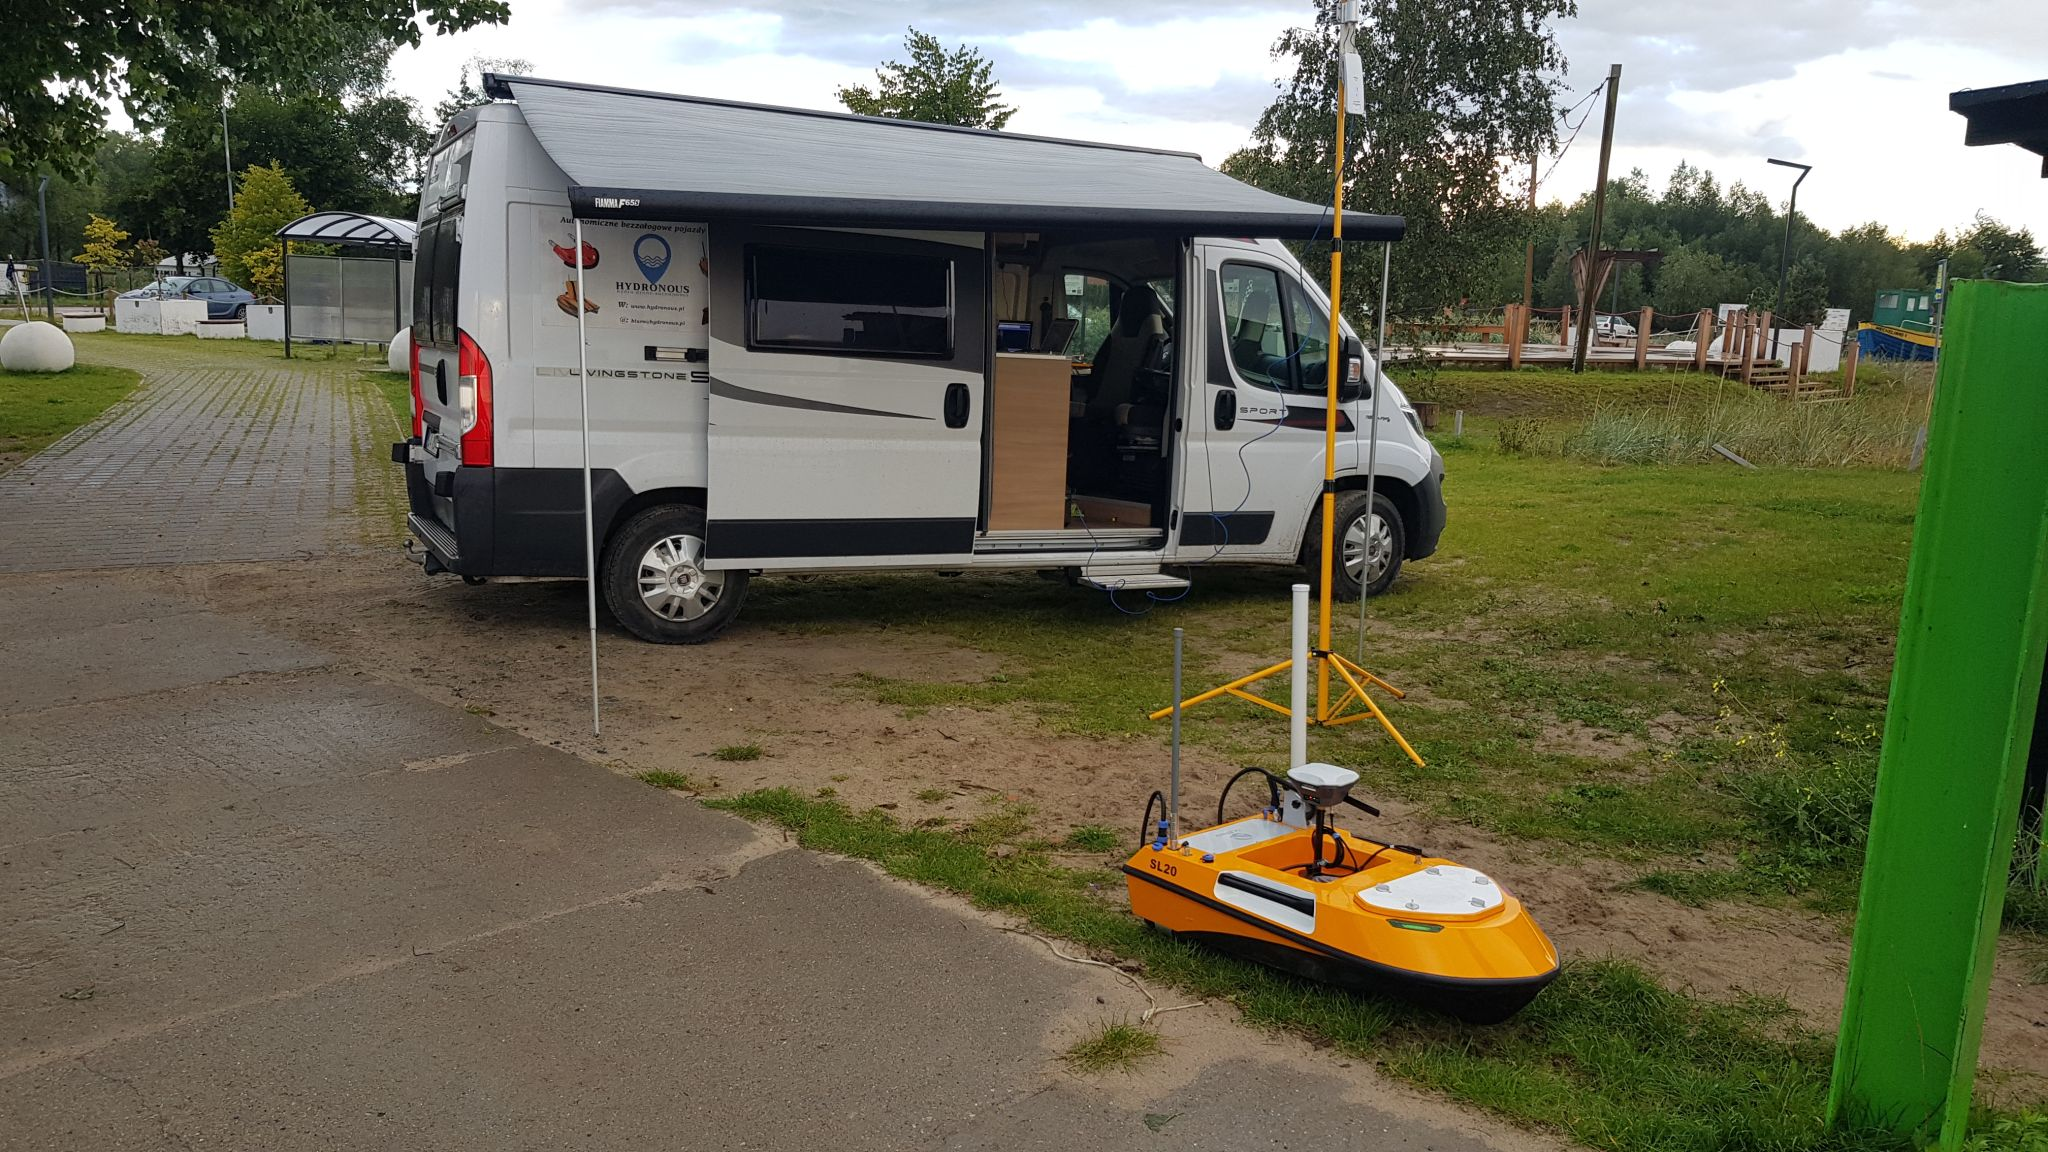 SL20 small unmanned surface vehicle transported by a RV